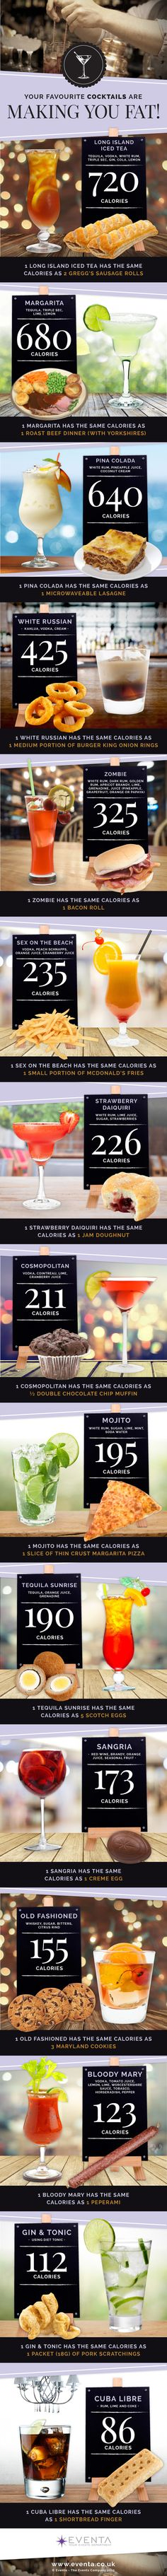 How Fattening are your Favourite Holiday Cocktails? #infographic #Food #Health #Wine #Cocktails